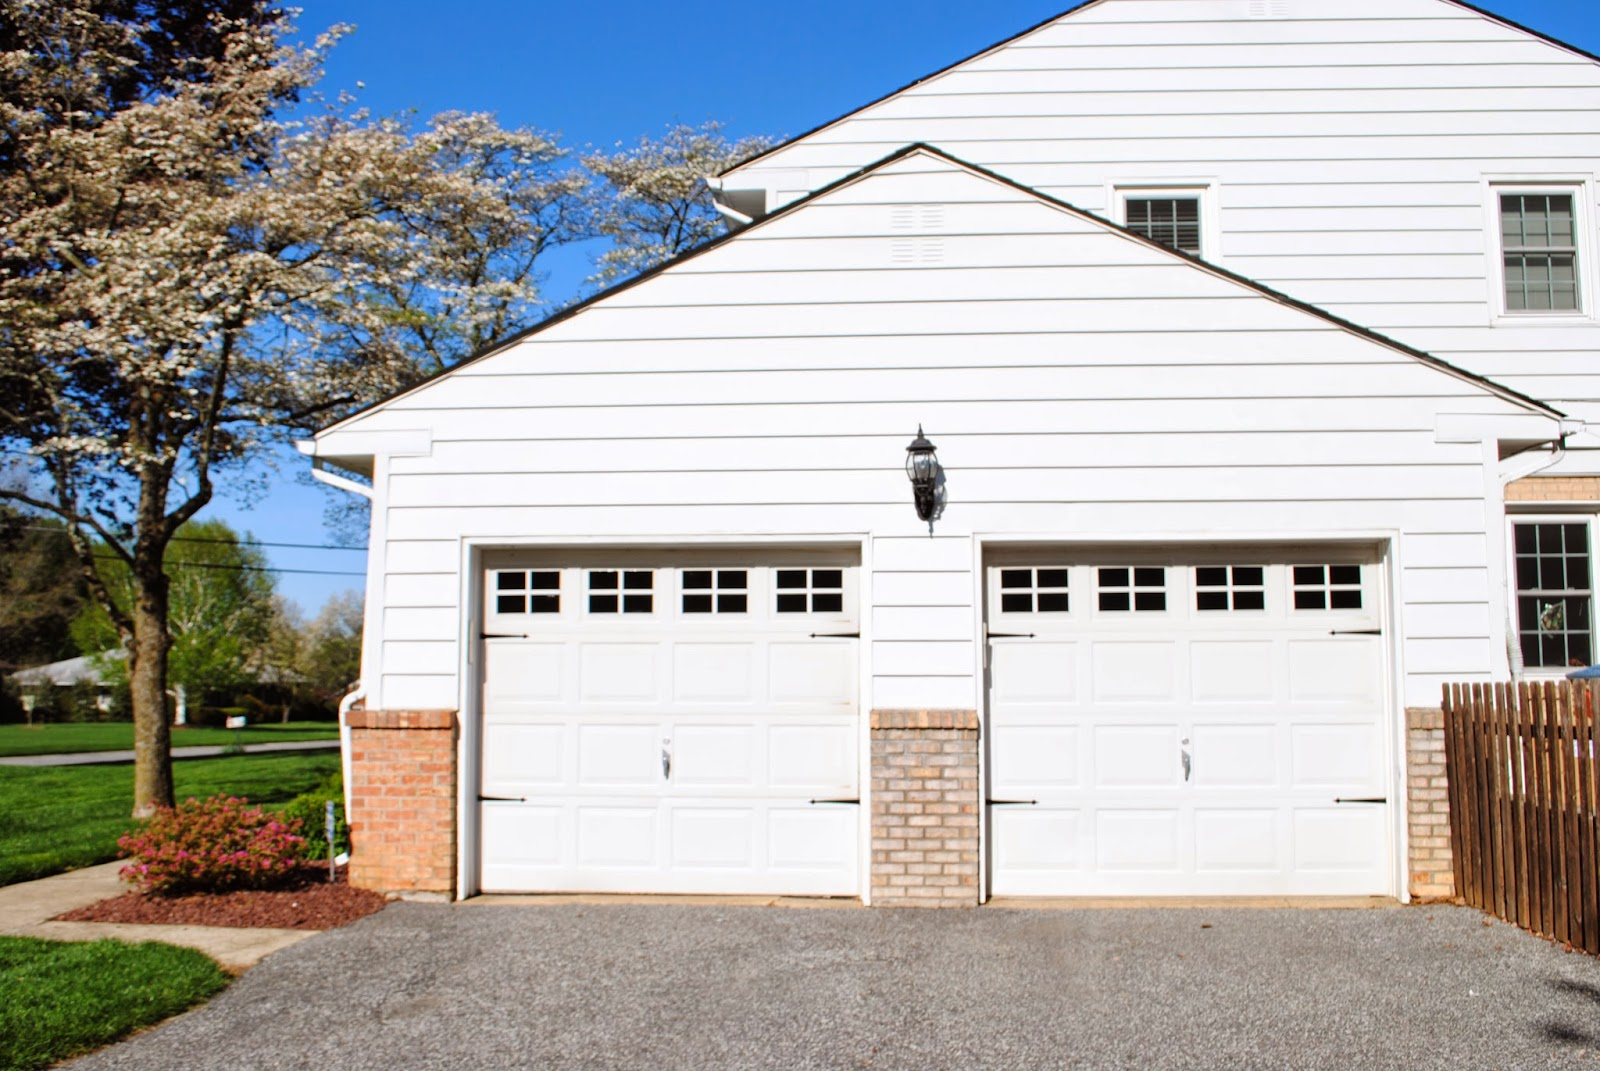 Vinyl, faux, carriage garage doors, DIY, do it yourself, free, Silhouette Studio, cut file